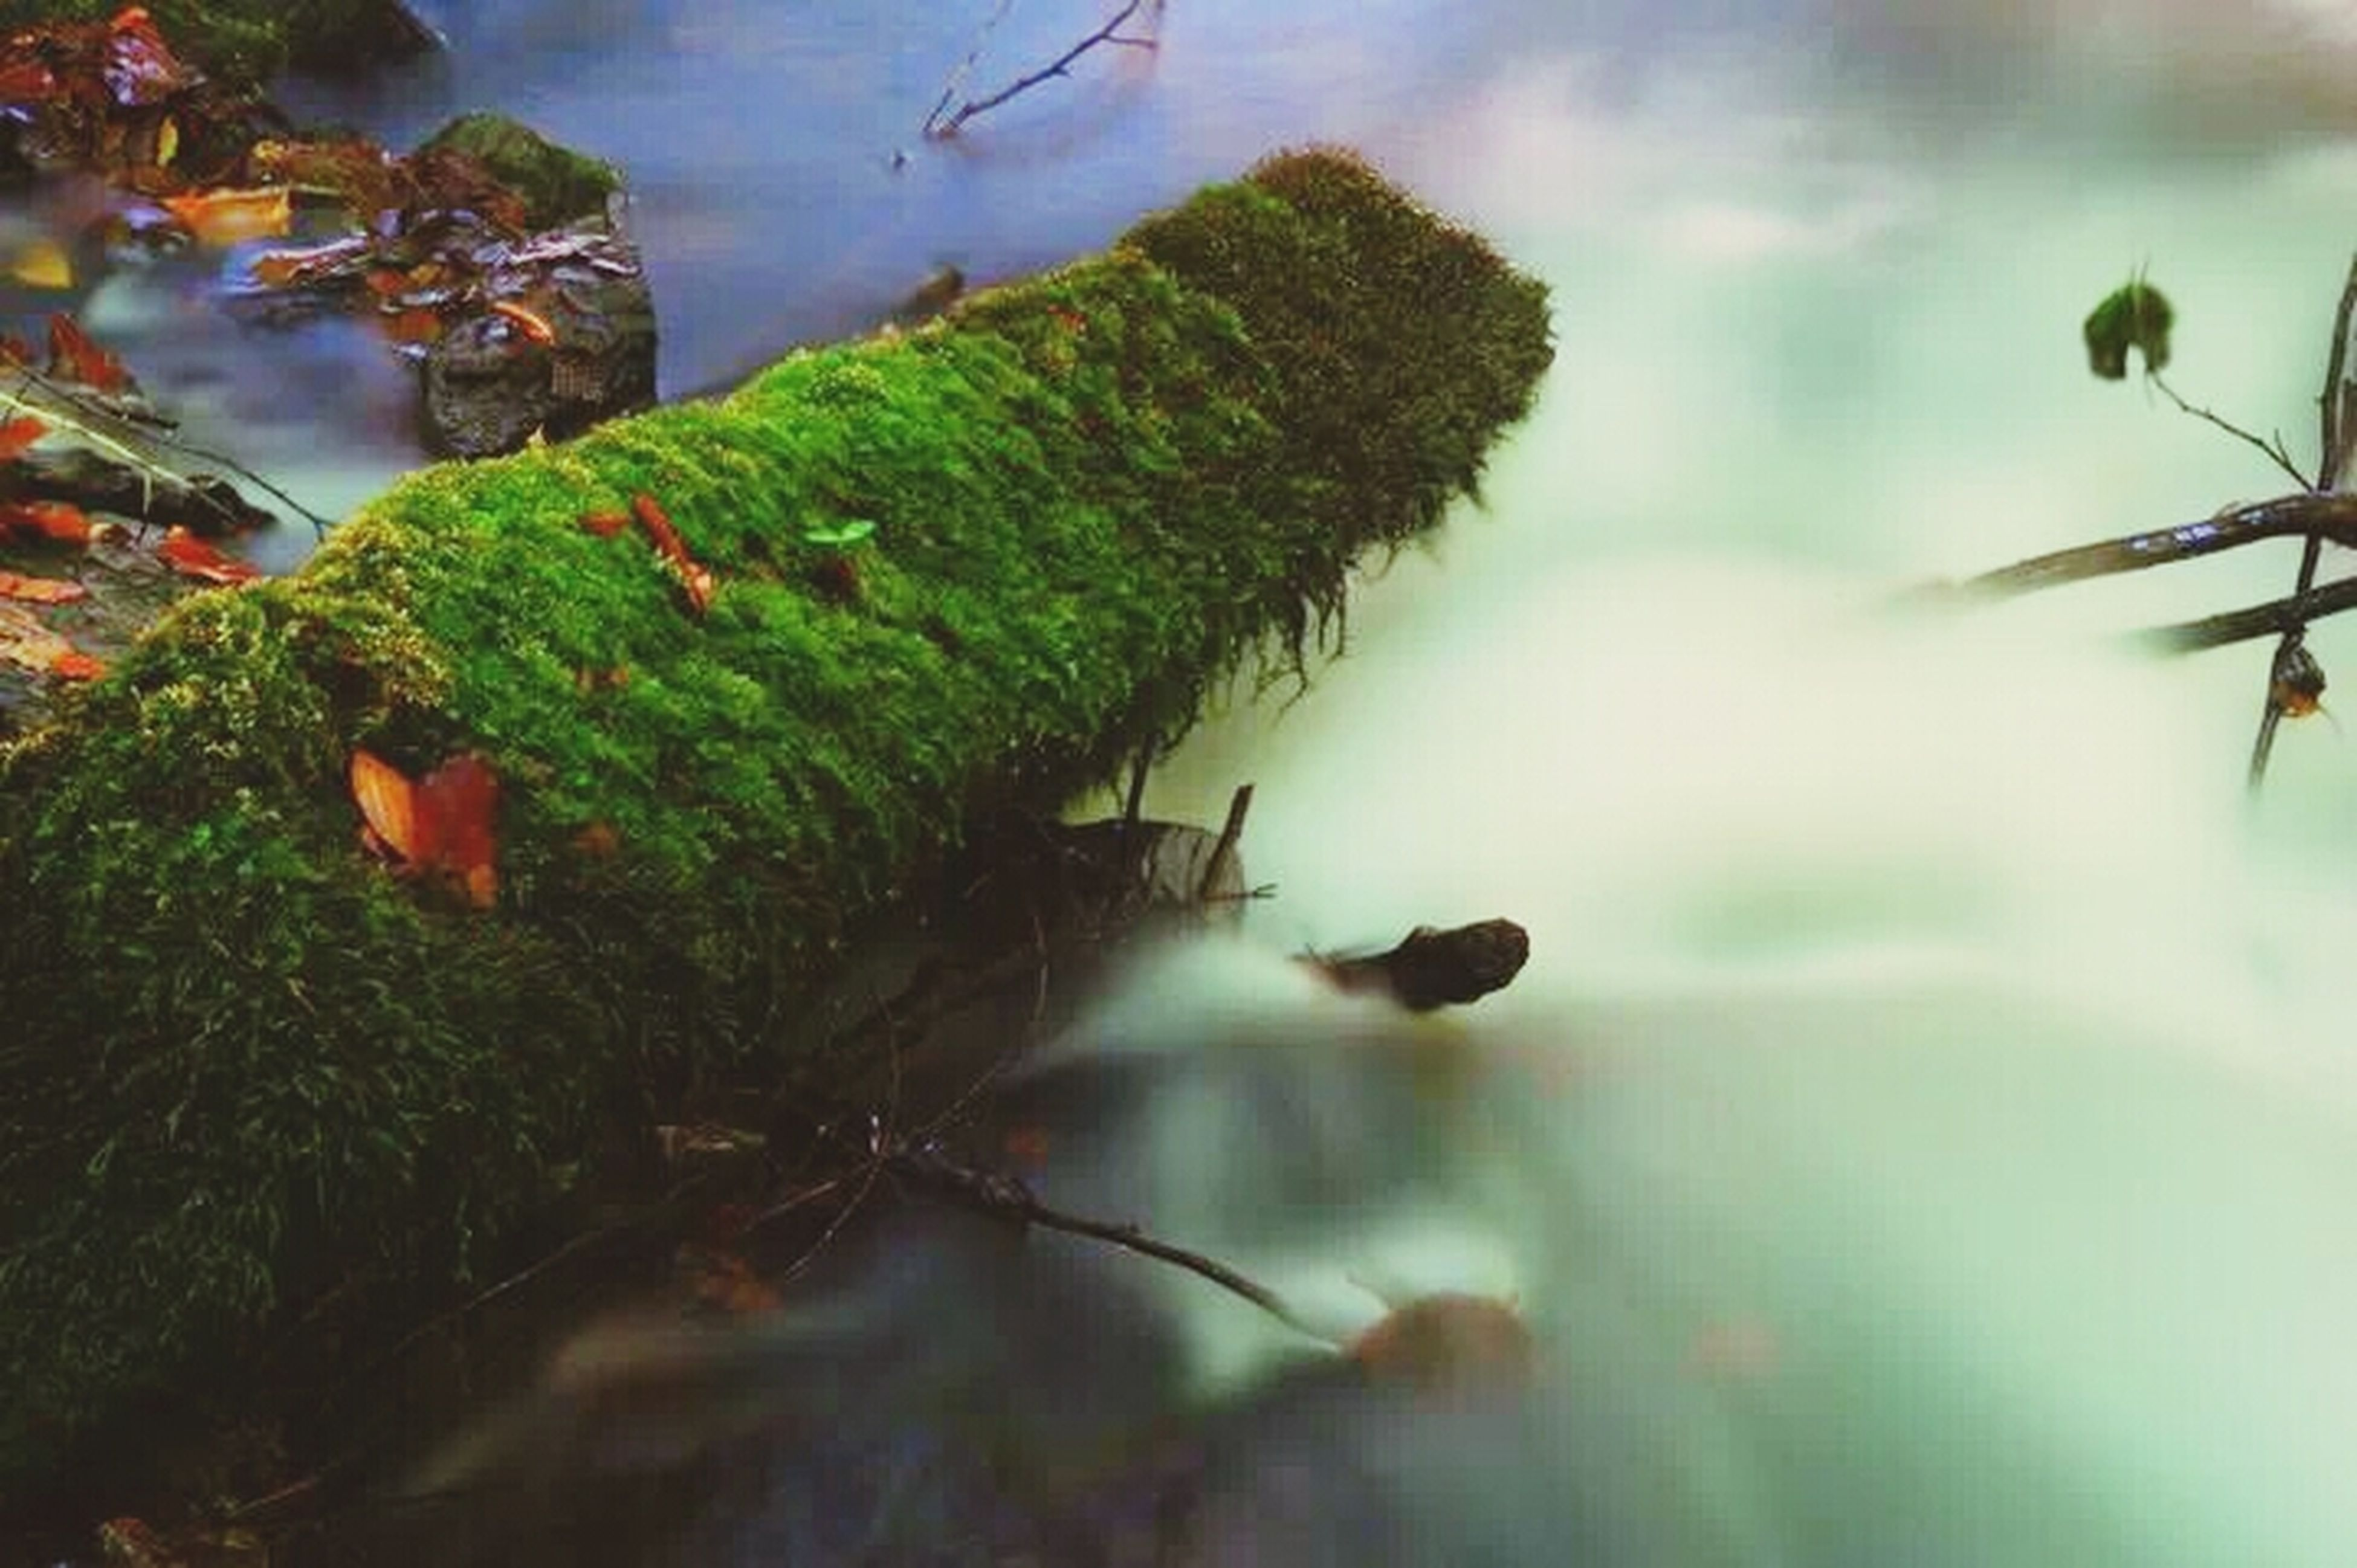 animal themes, animals in the wild, wildlife, one animal, nature, plant, growth, selective focus, green color, water, bird, leaf, tree, tranquility, outdoors, close-up, day, beauty in nature, branch, no people